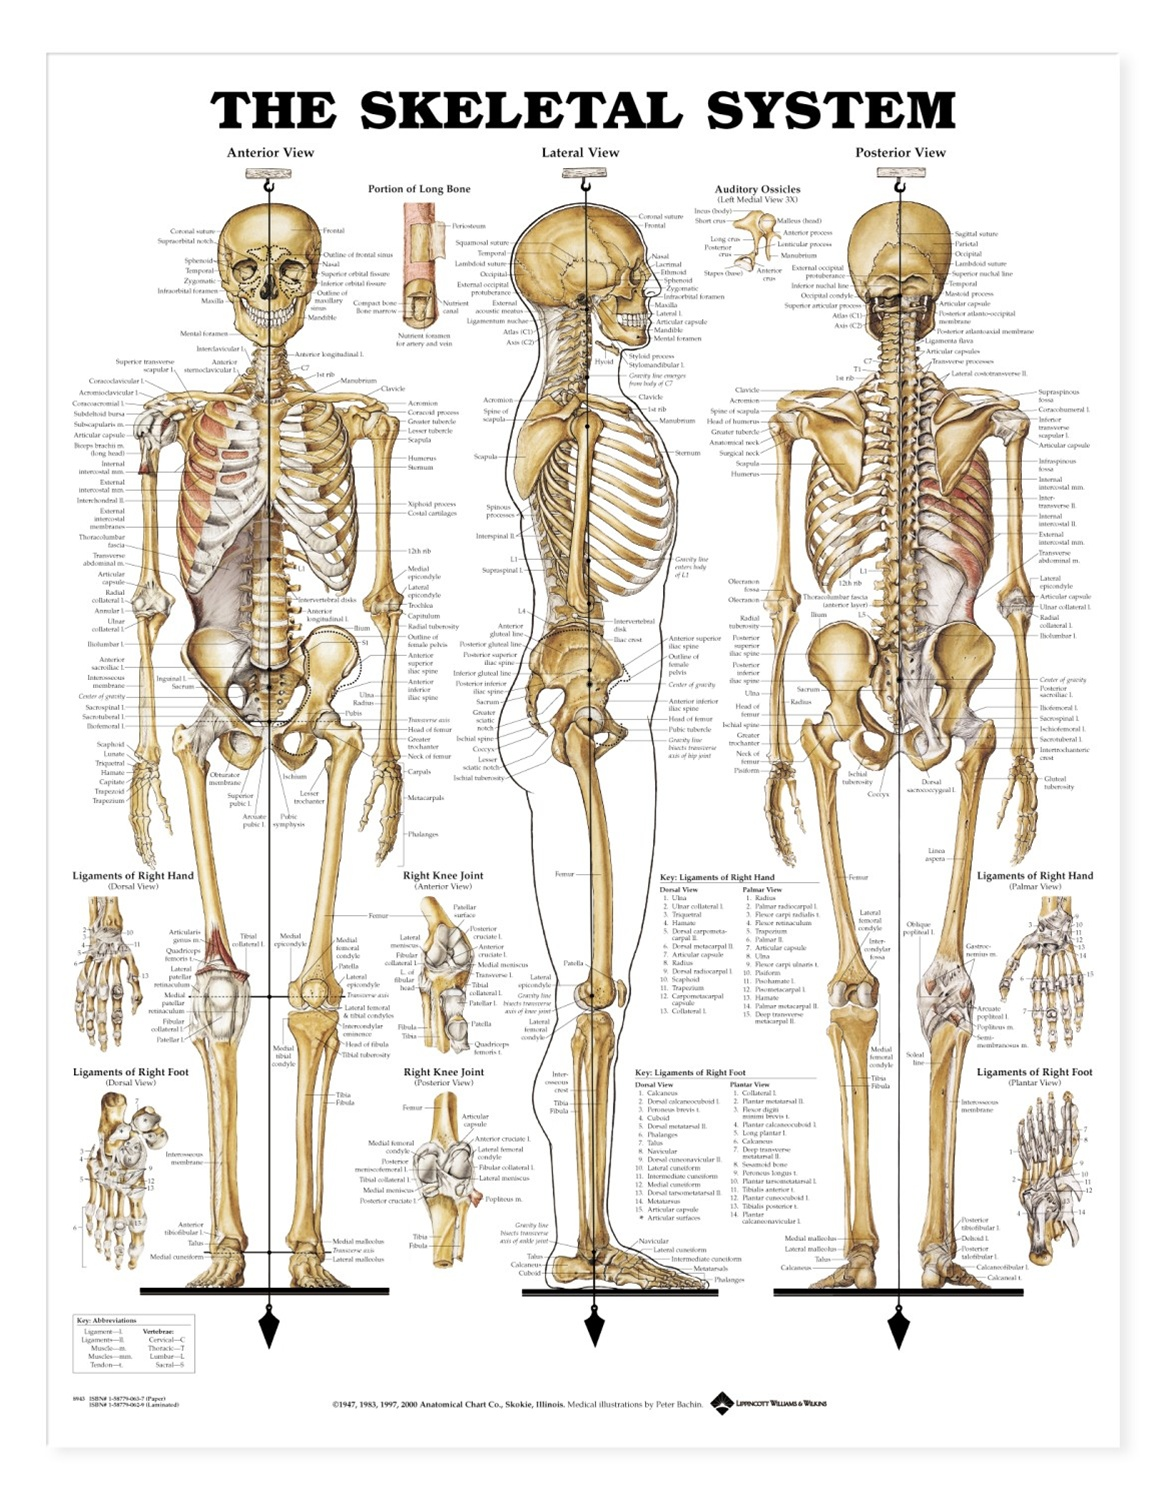 The Skeletal System Anatomical Chart - Anatomy Models and Anatomical ...